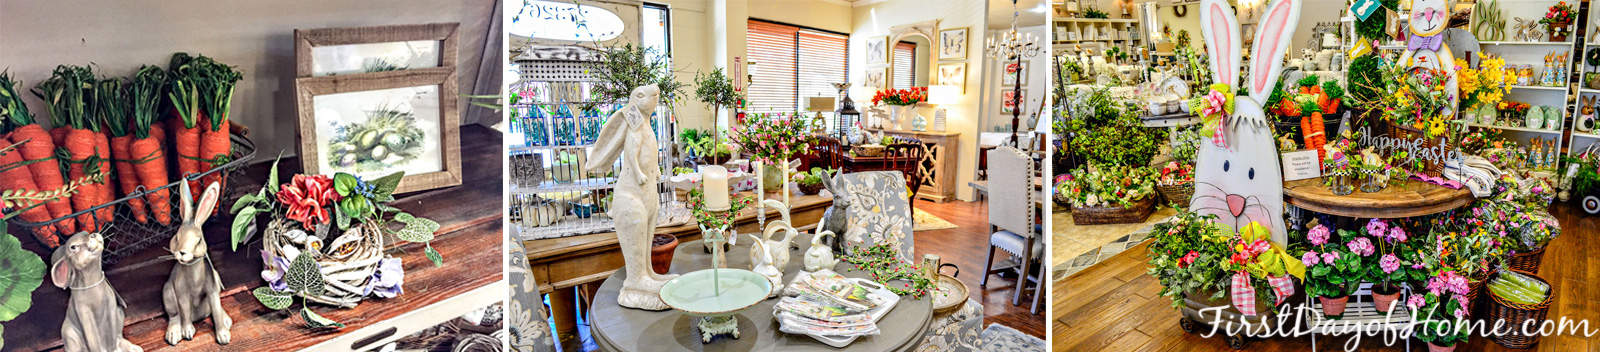 Spring and Easter decorating ideas from local boutique home decor shops